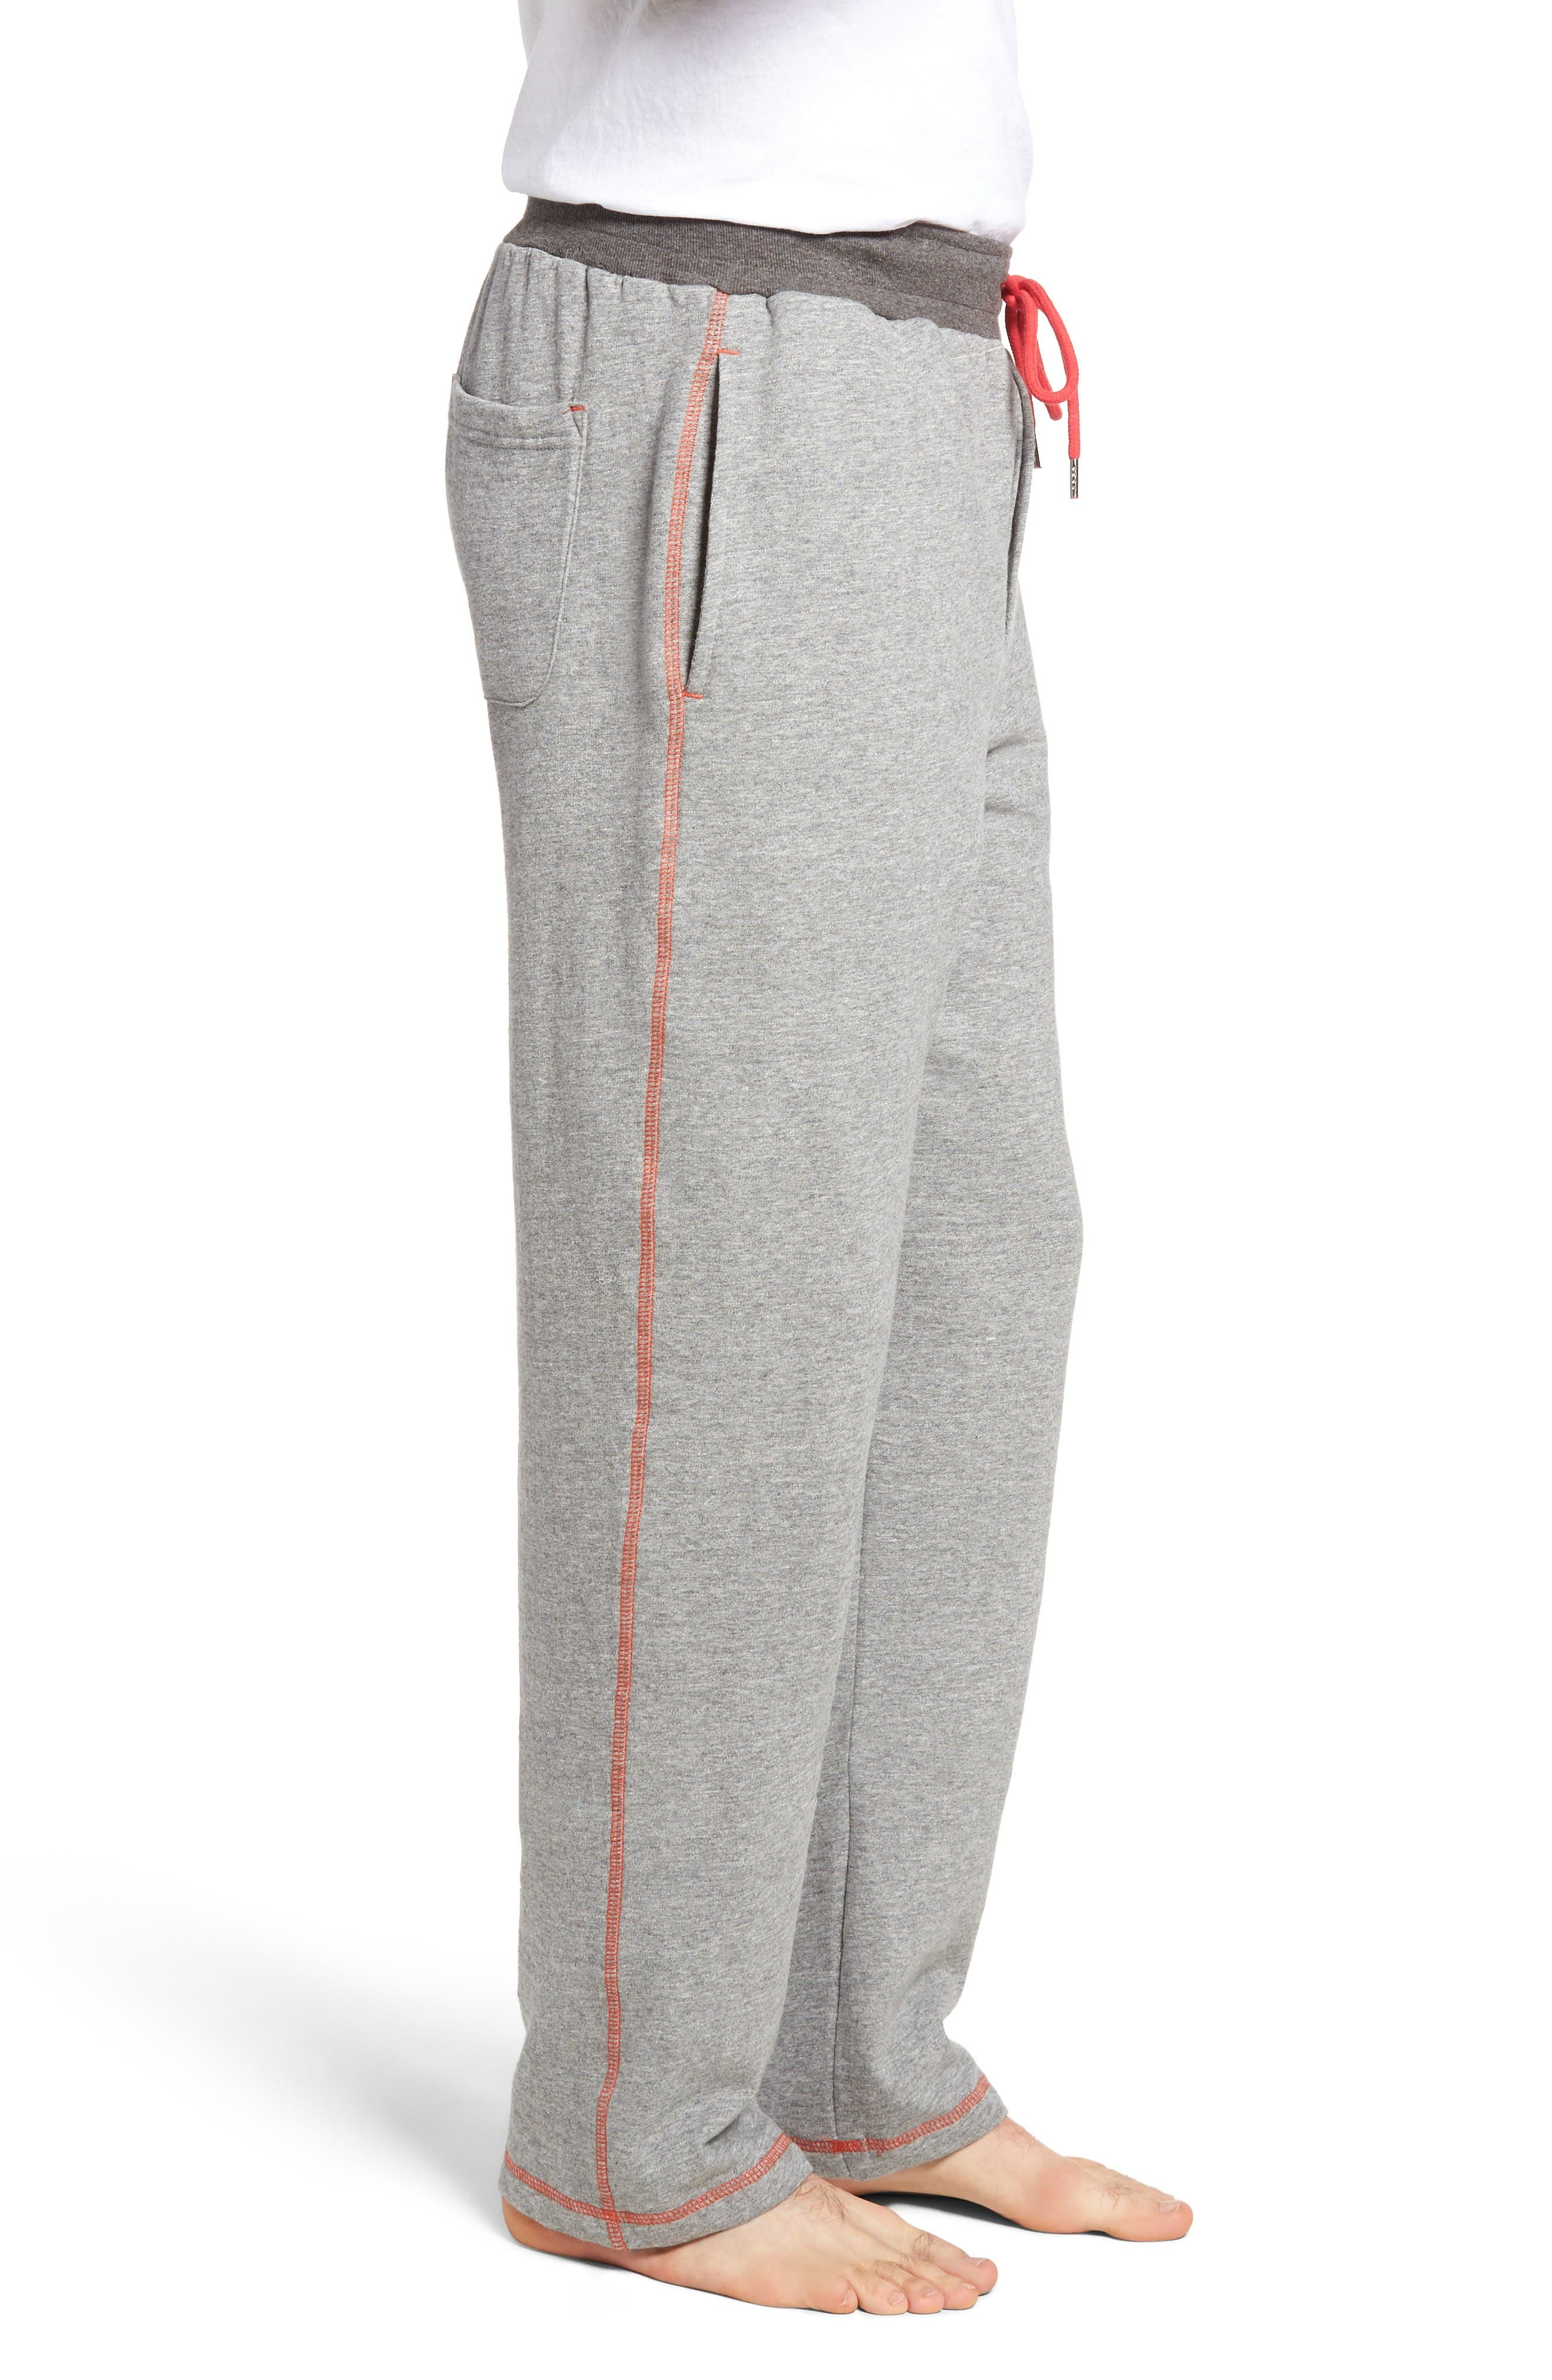 Bhooka Cotton Blend Lounge Pants,                             Alternate thumbnail 3, color,                             Charcoal Heather